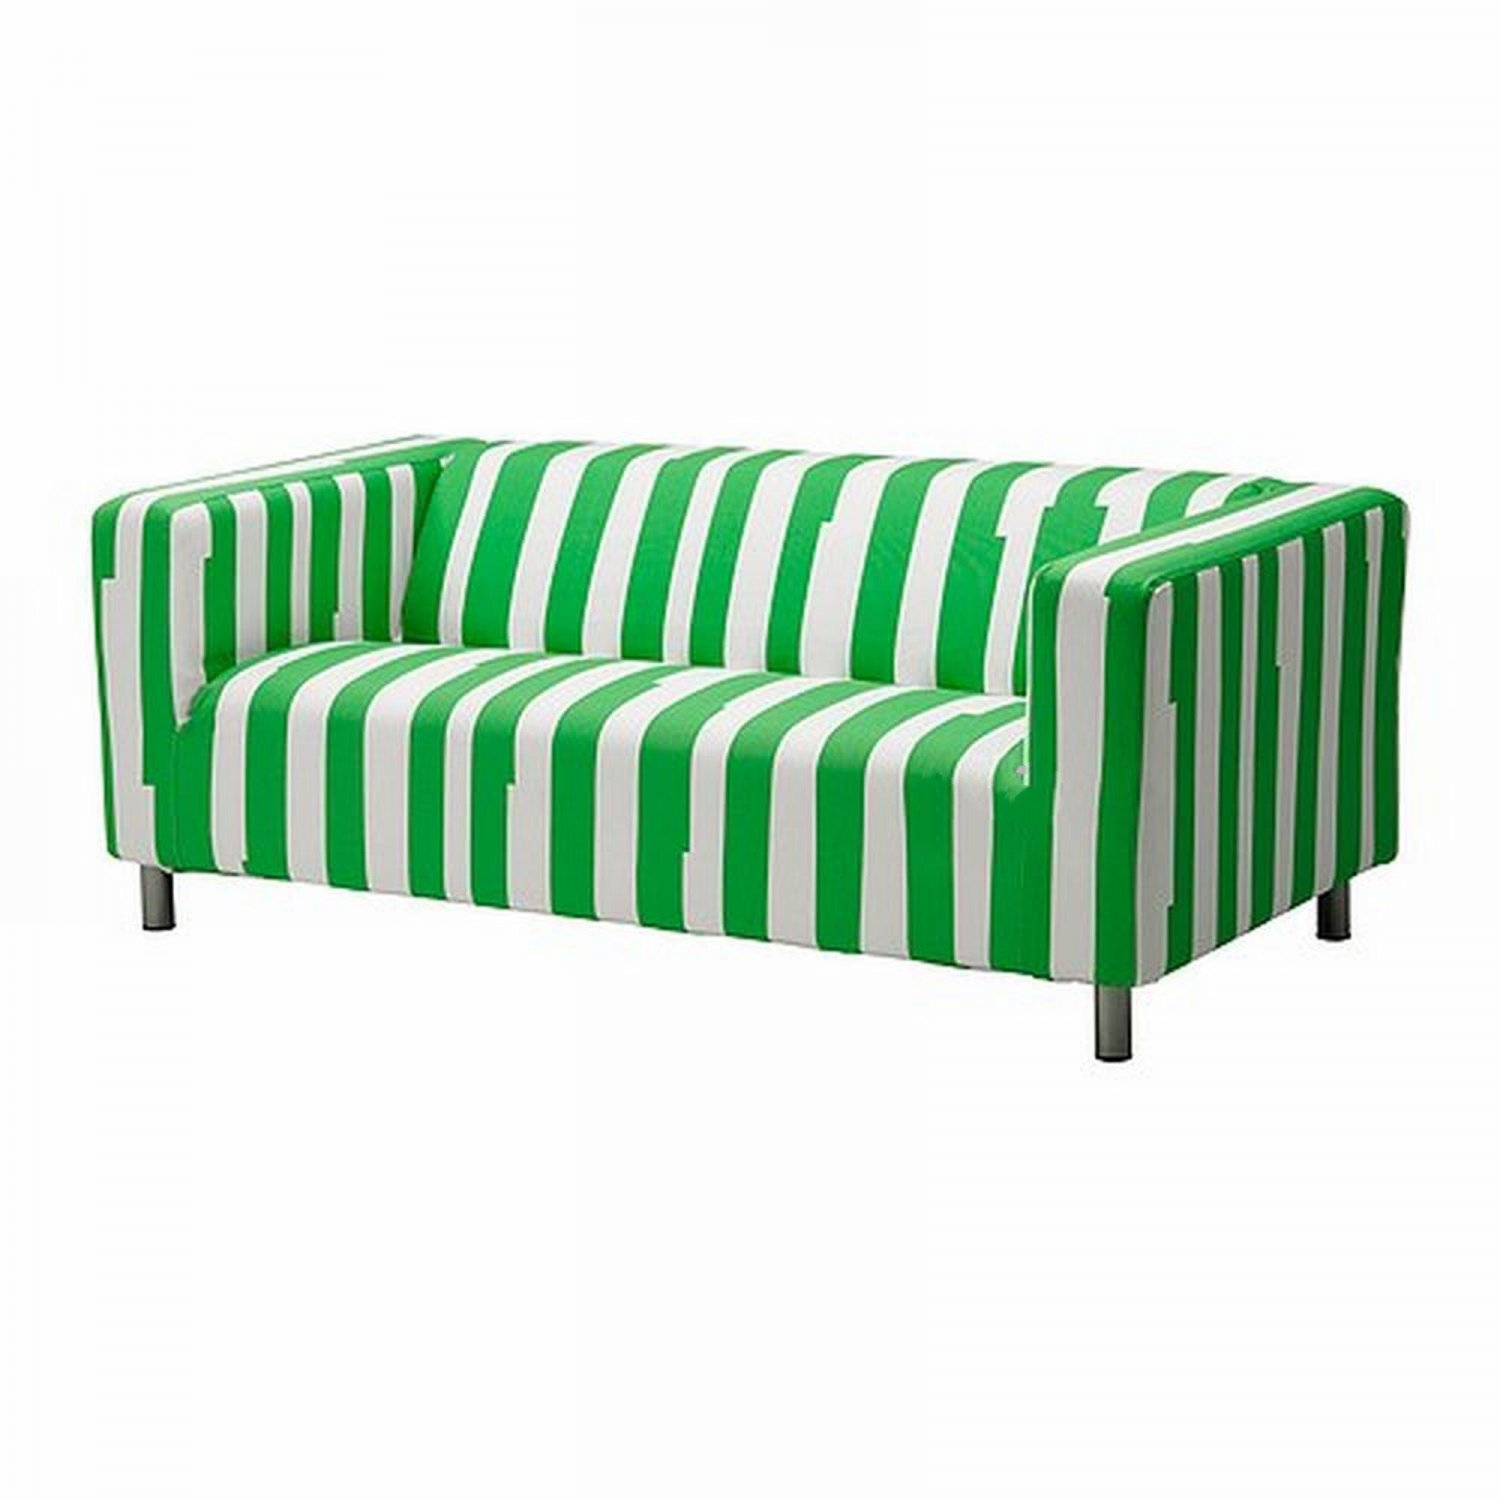 Ikea Klippan Loveseat Sofa Slipcover Cover Ranten Green Stripes